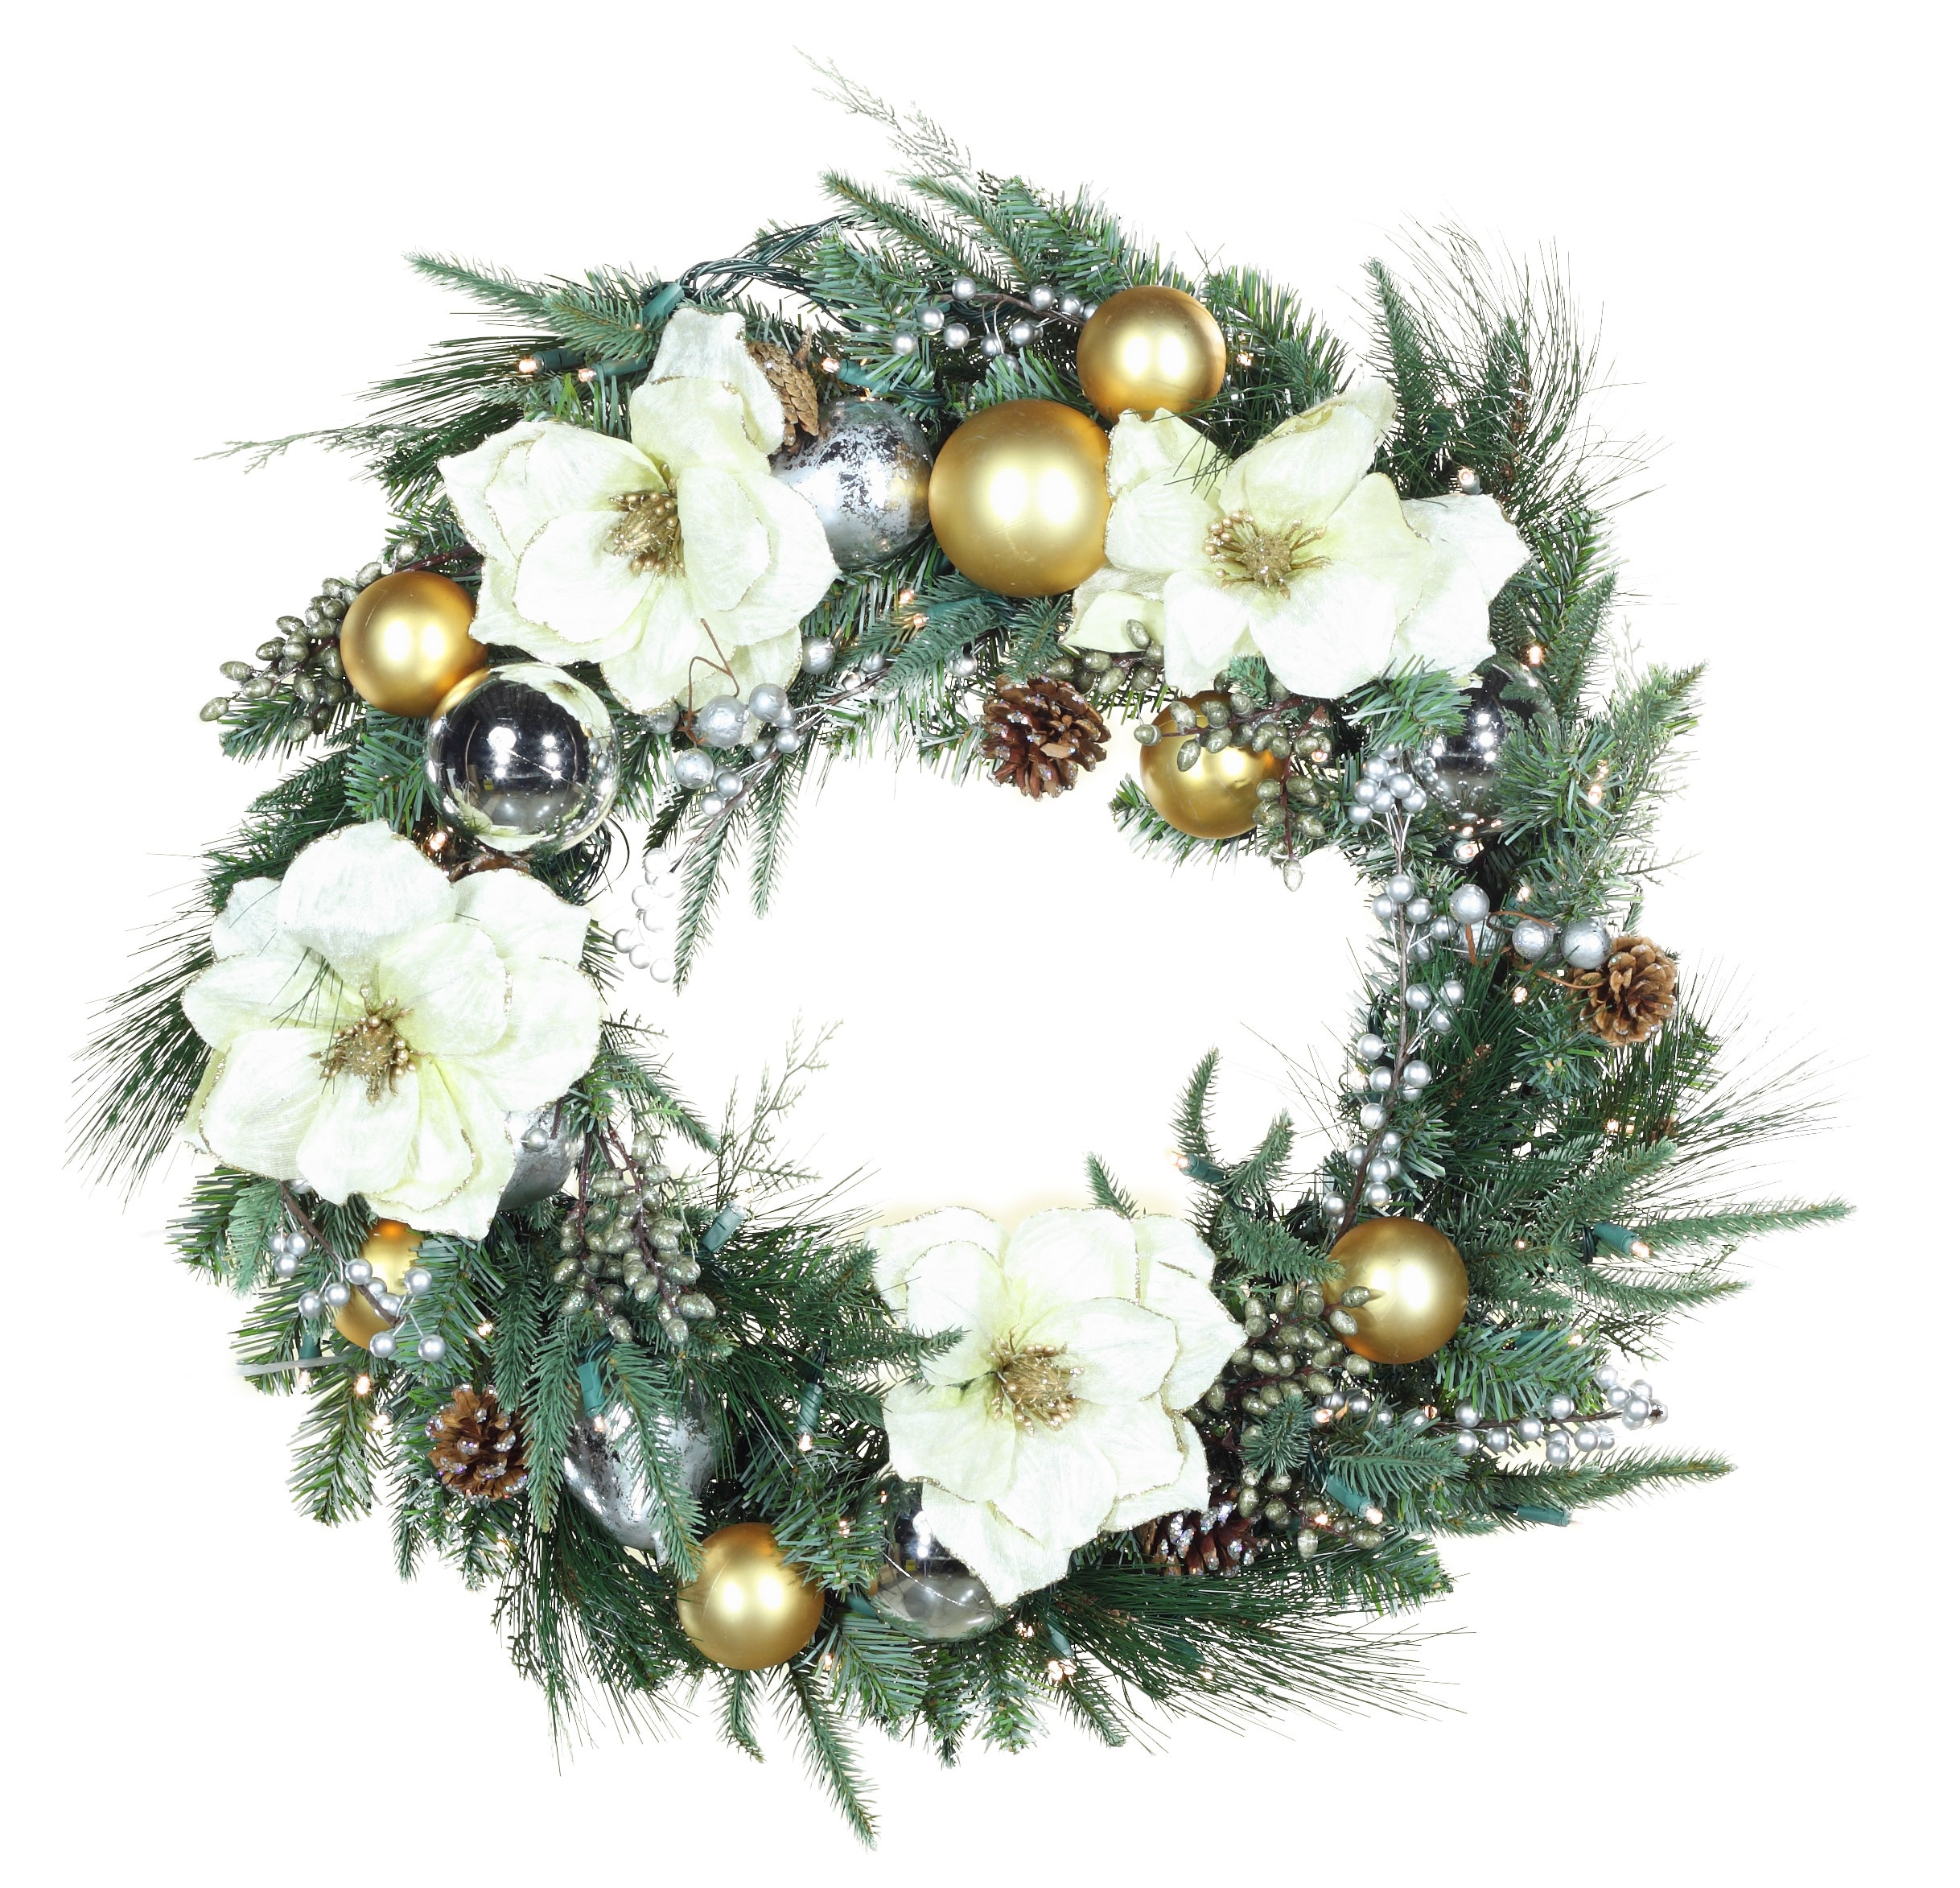 decorative Christmas wreaths